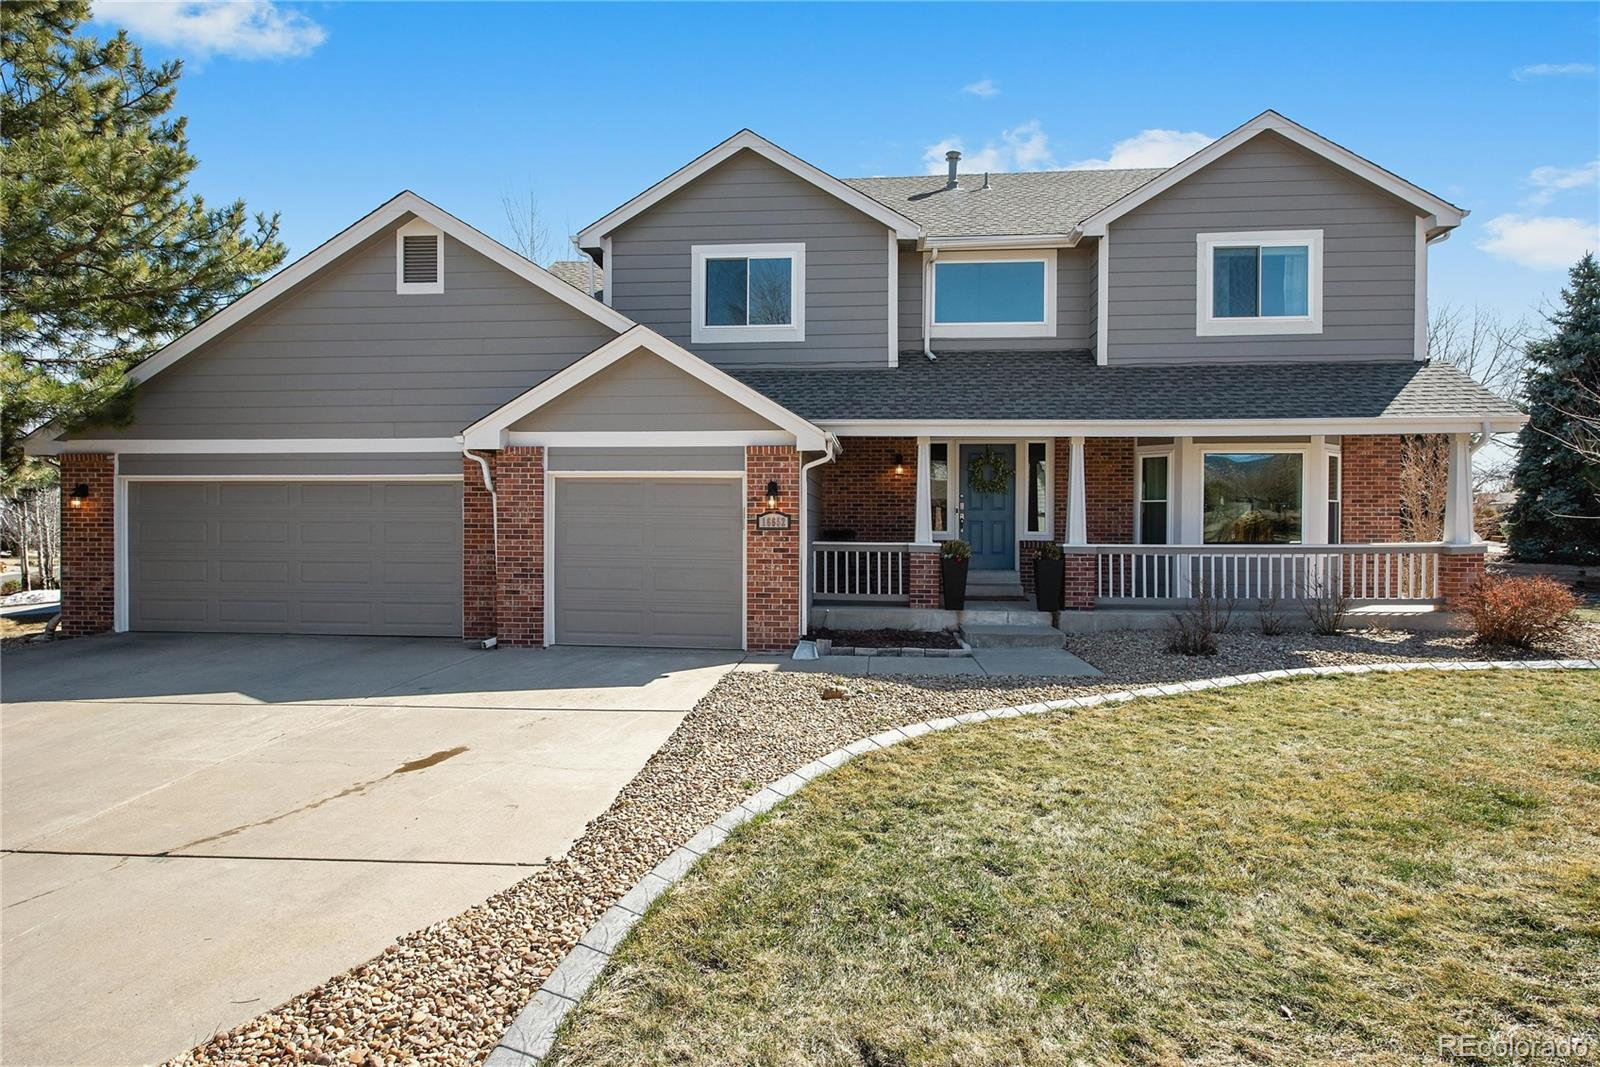 MLS# 7778150 - 2 - 16652 W 55th Place, Golden, CO 80403